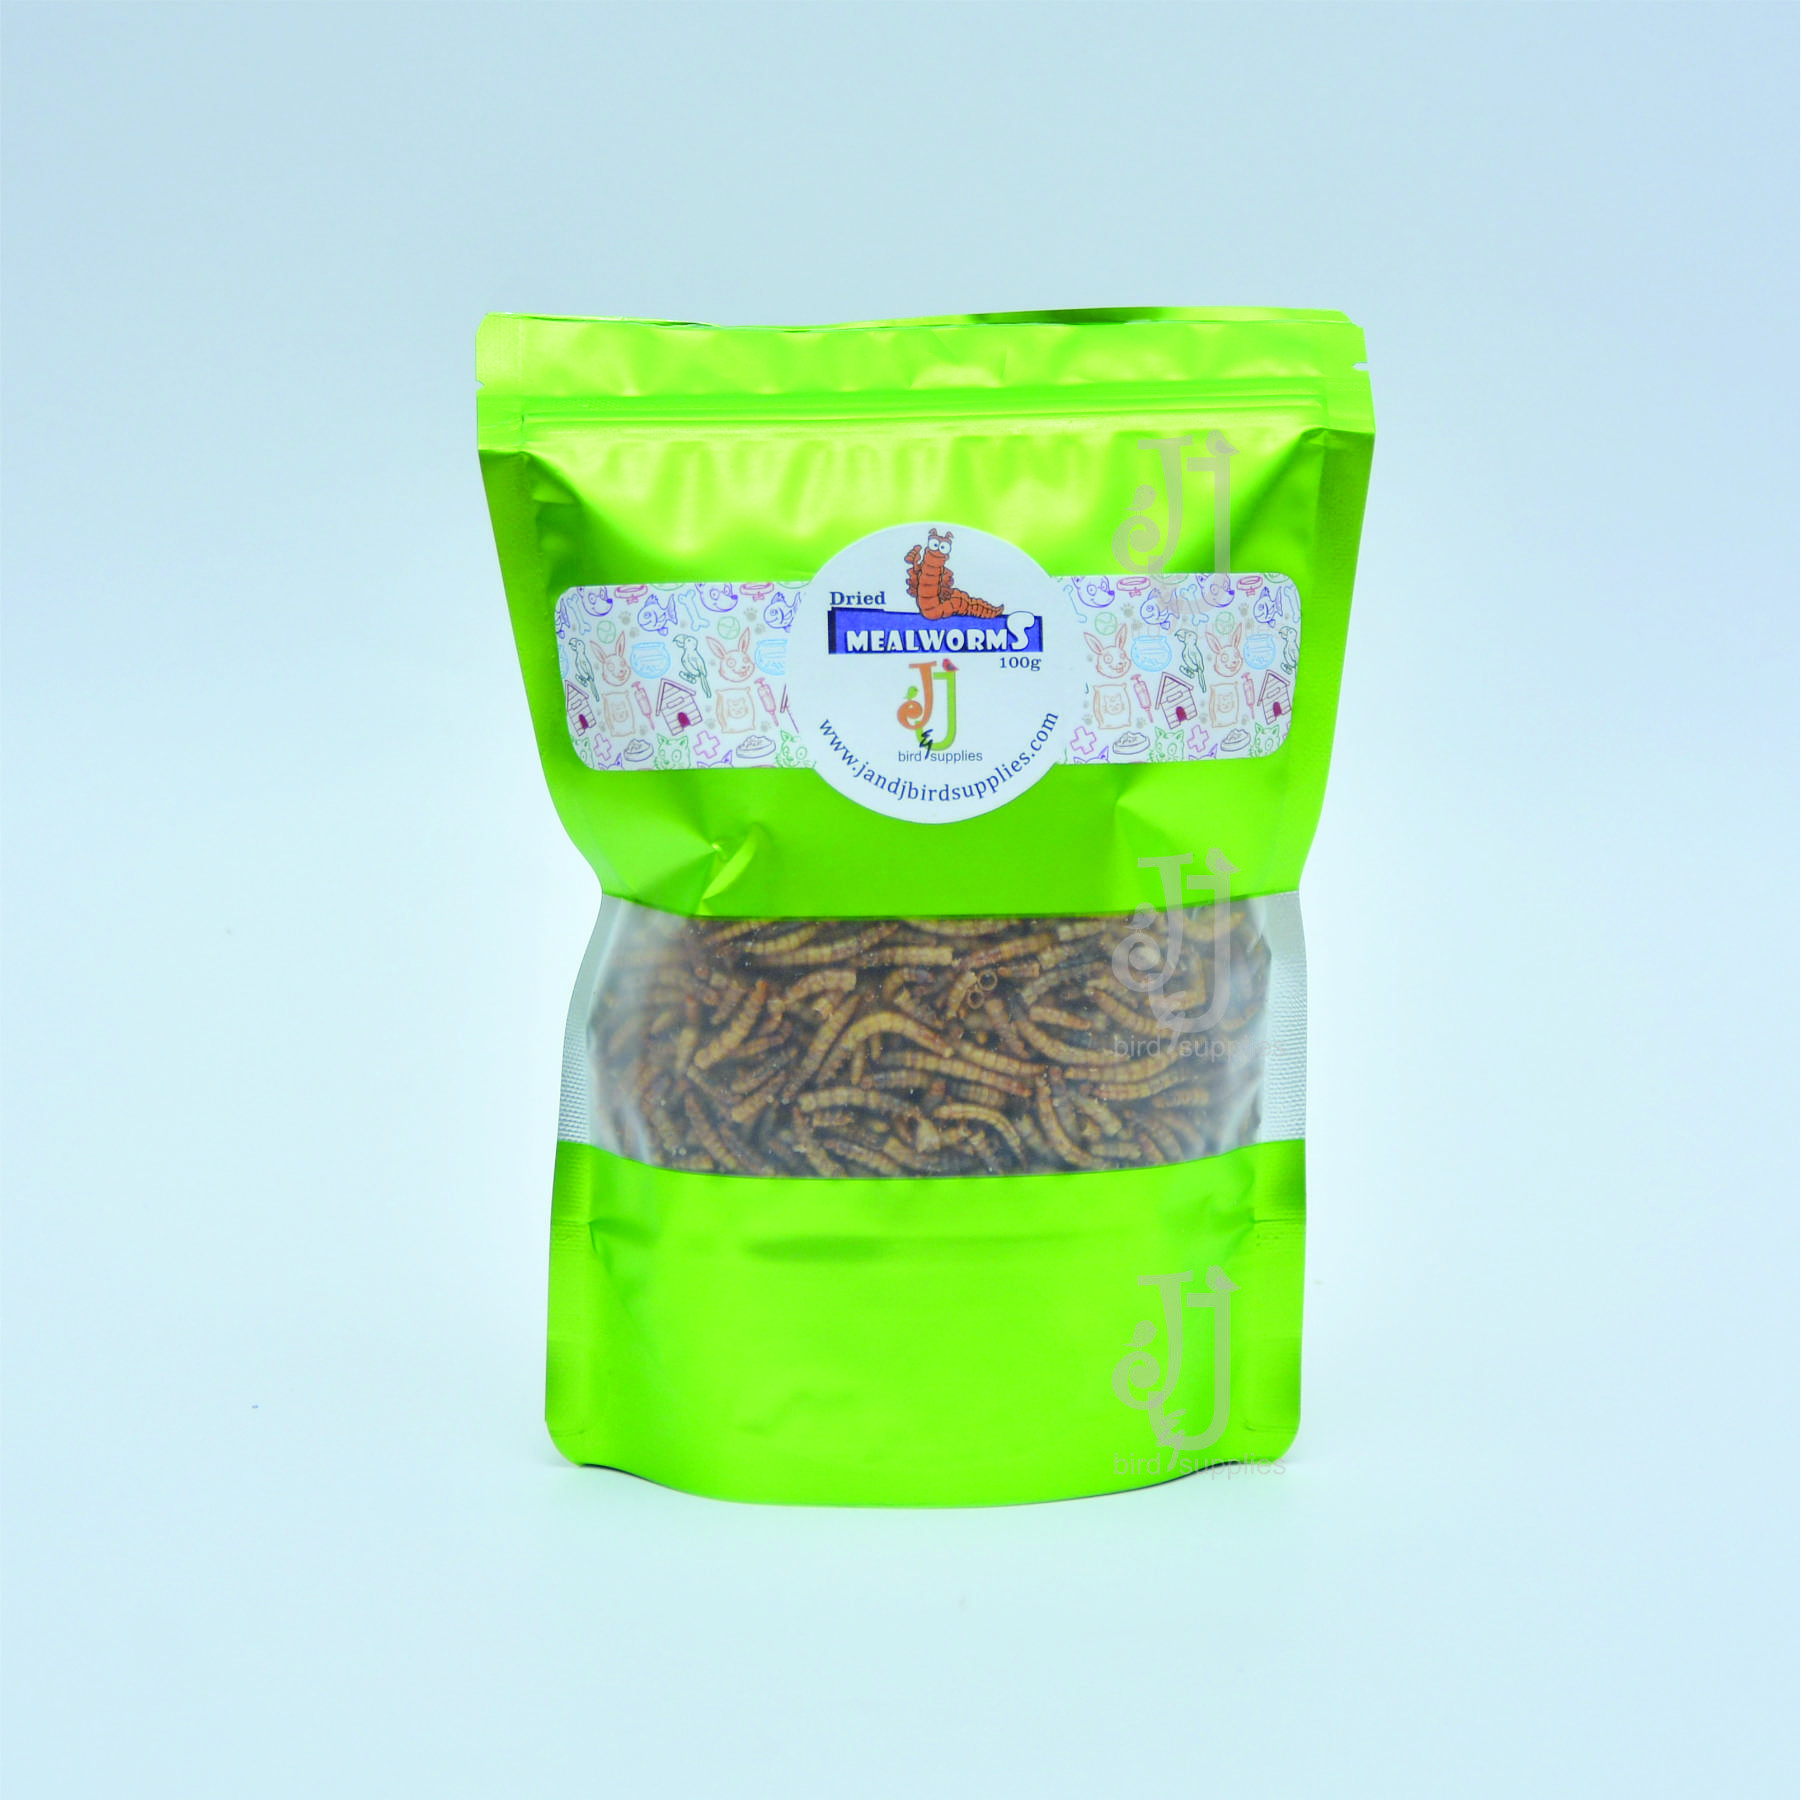 mealworms 3